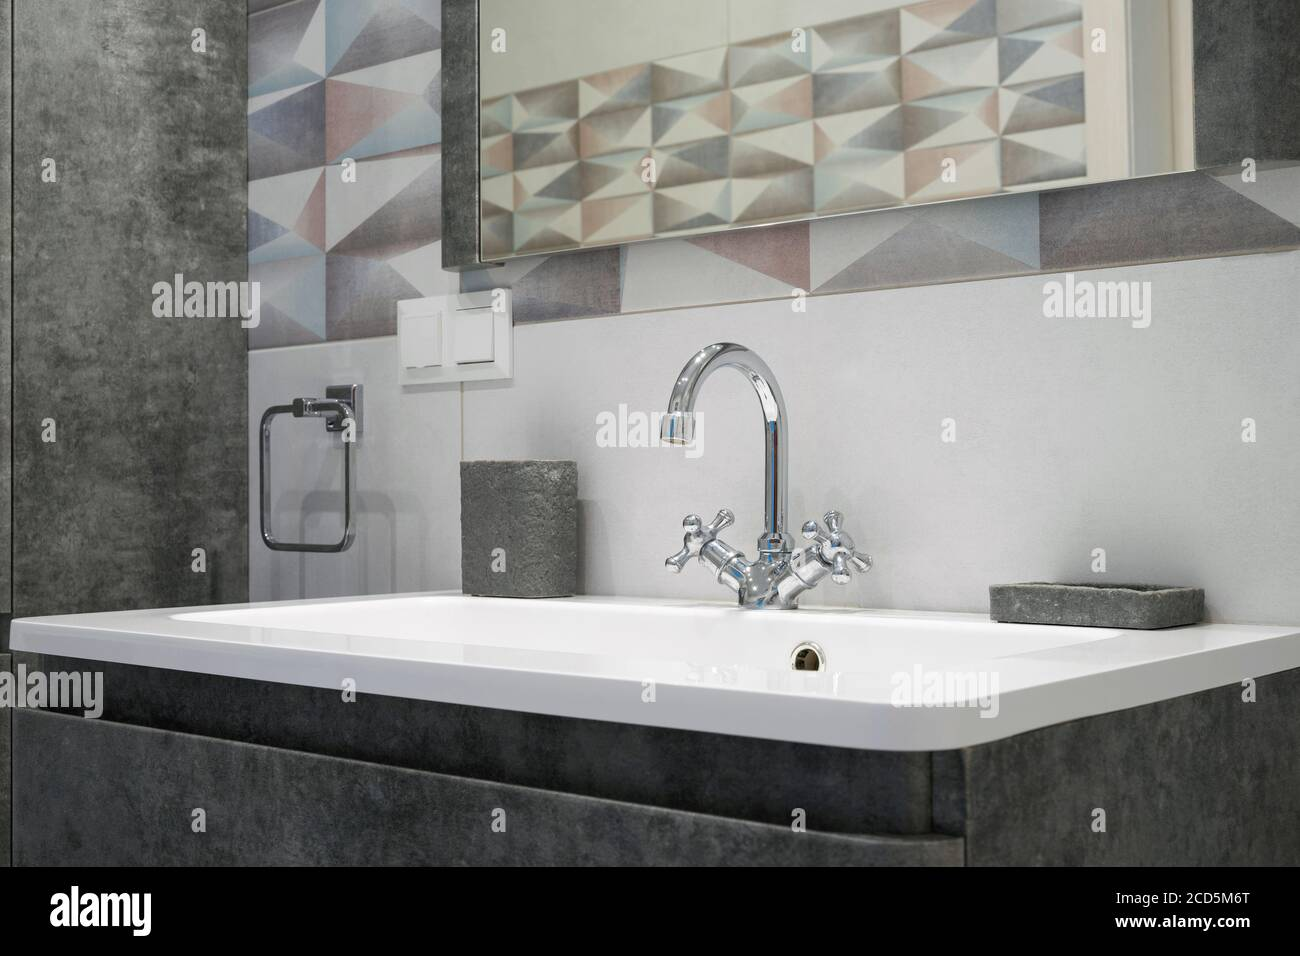 Modern Bathroom Interior With Metal Faucet And Ceramic White Sink Bath Accessories And Mirror Stock Photo Alamy